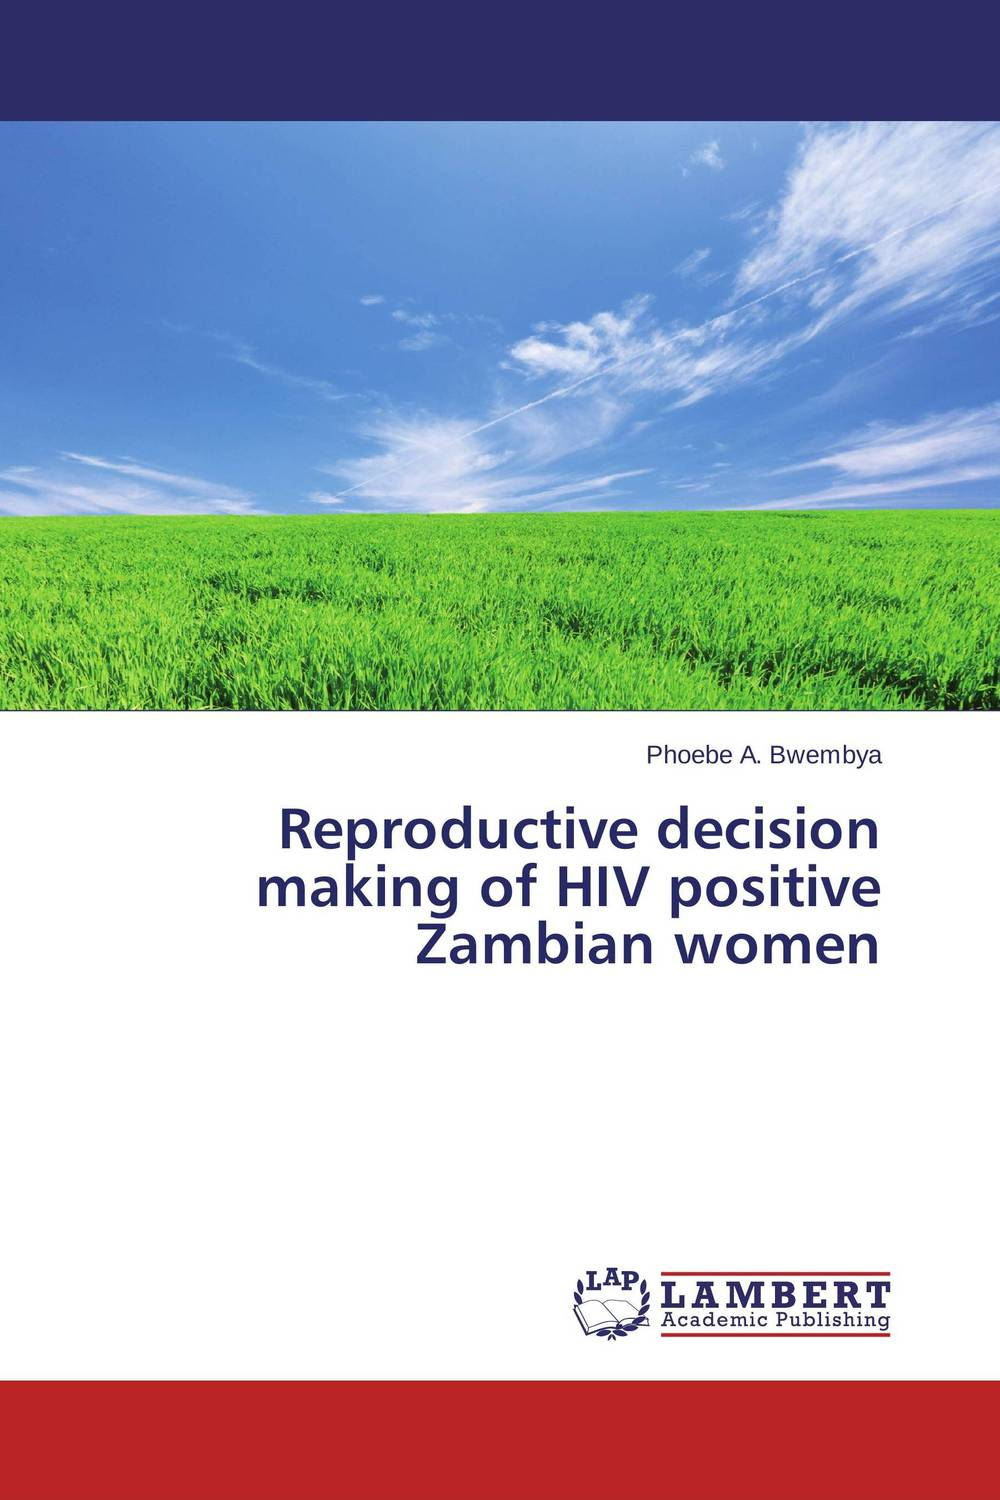 Reproductive decision making of HIV positive Zambian women samhaa samir ibrahim mohammed and sherif mohamed attia houria family relations and reproductive health through early marriage